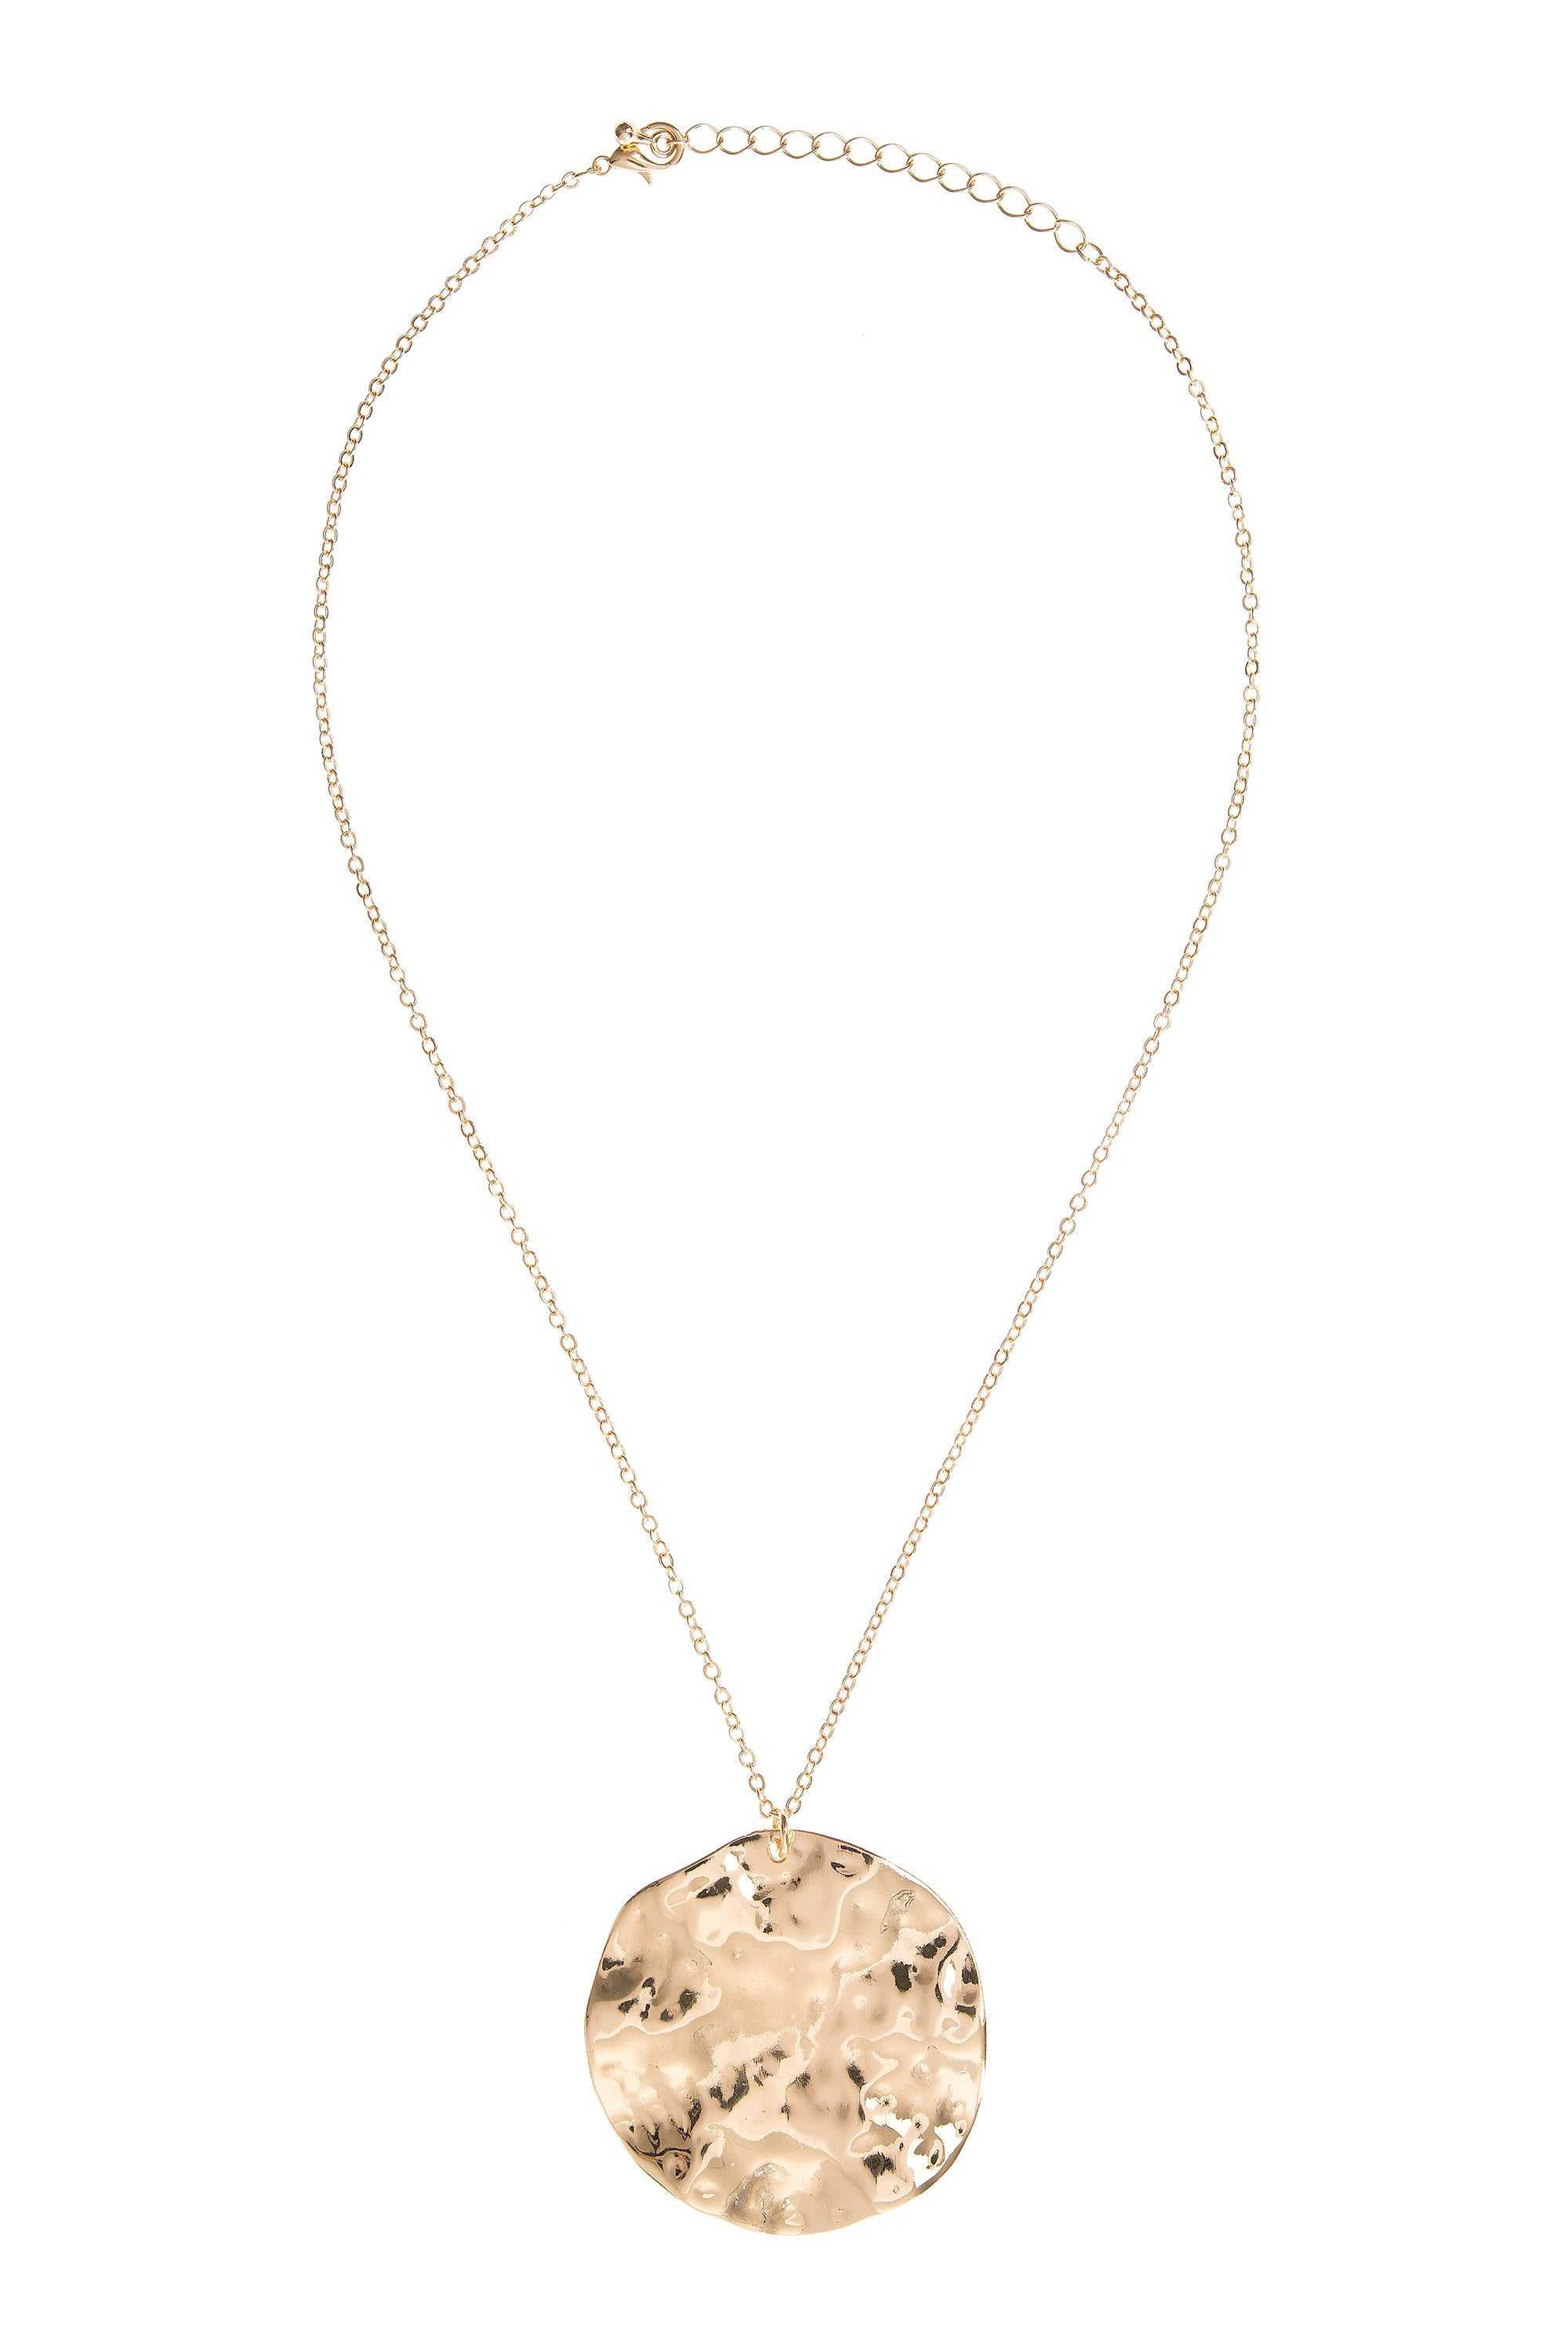 Type 1 Sand Dollar Necklace